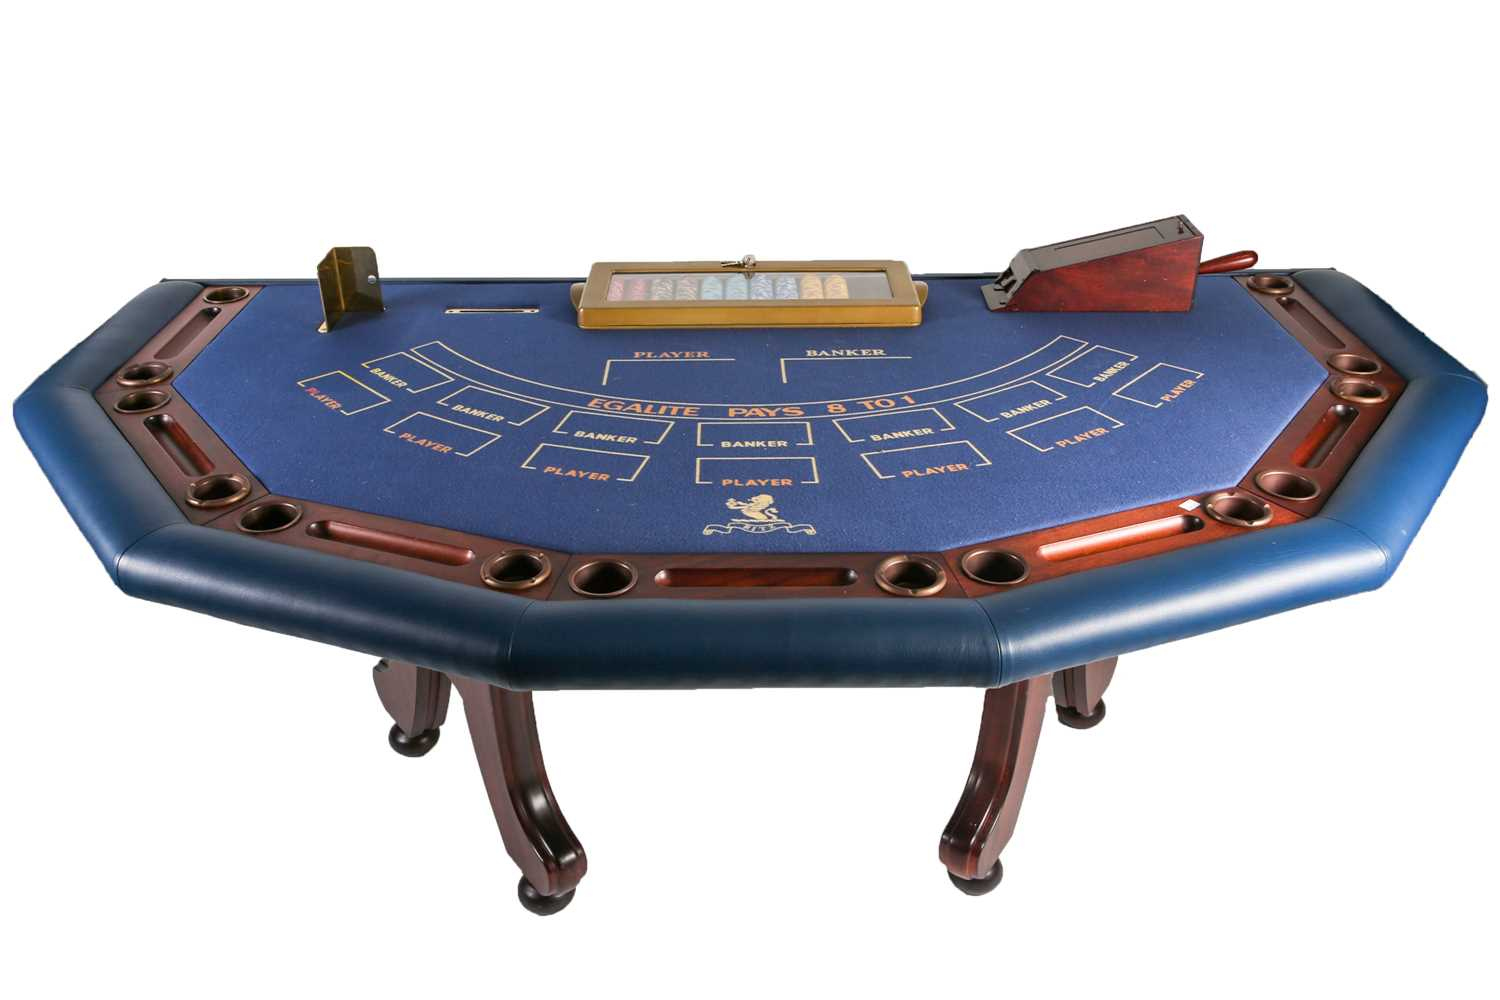 An original Ritz (London) croupier's baccarat card table, with gaming chips, John Huxley Gaming